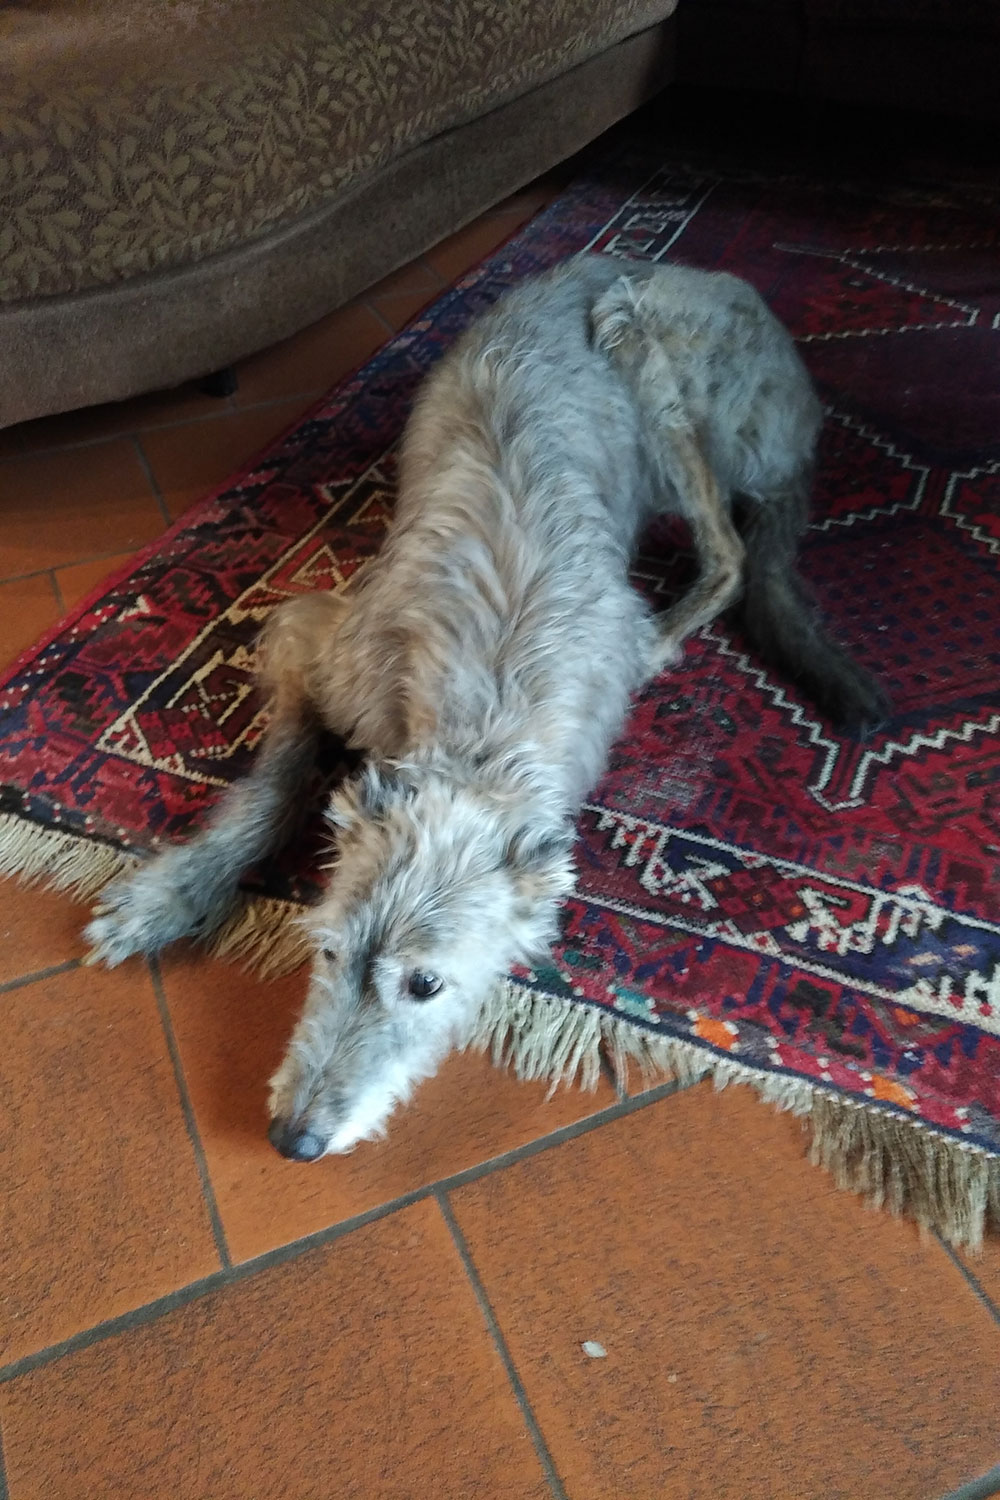 Chilled out and stretched out — Jac Jac just before getting on board